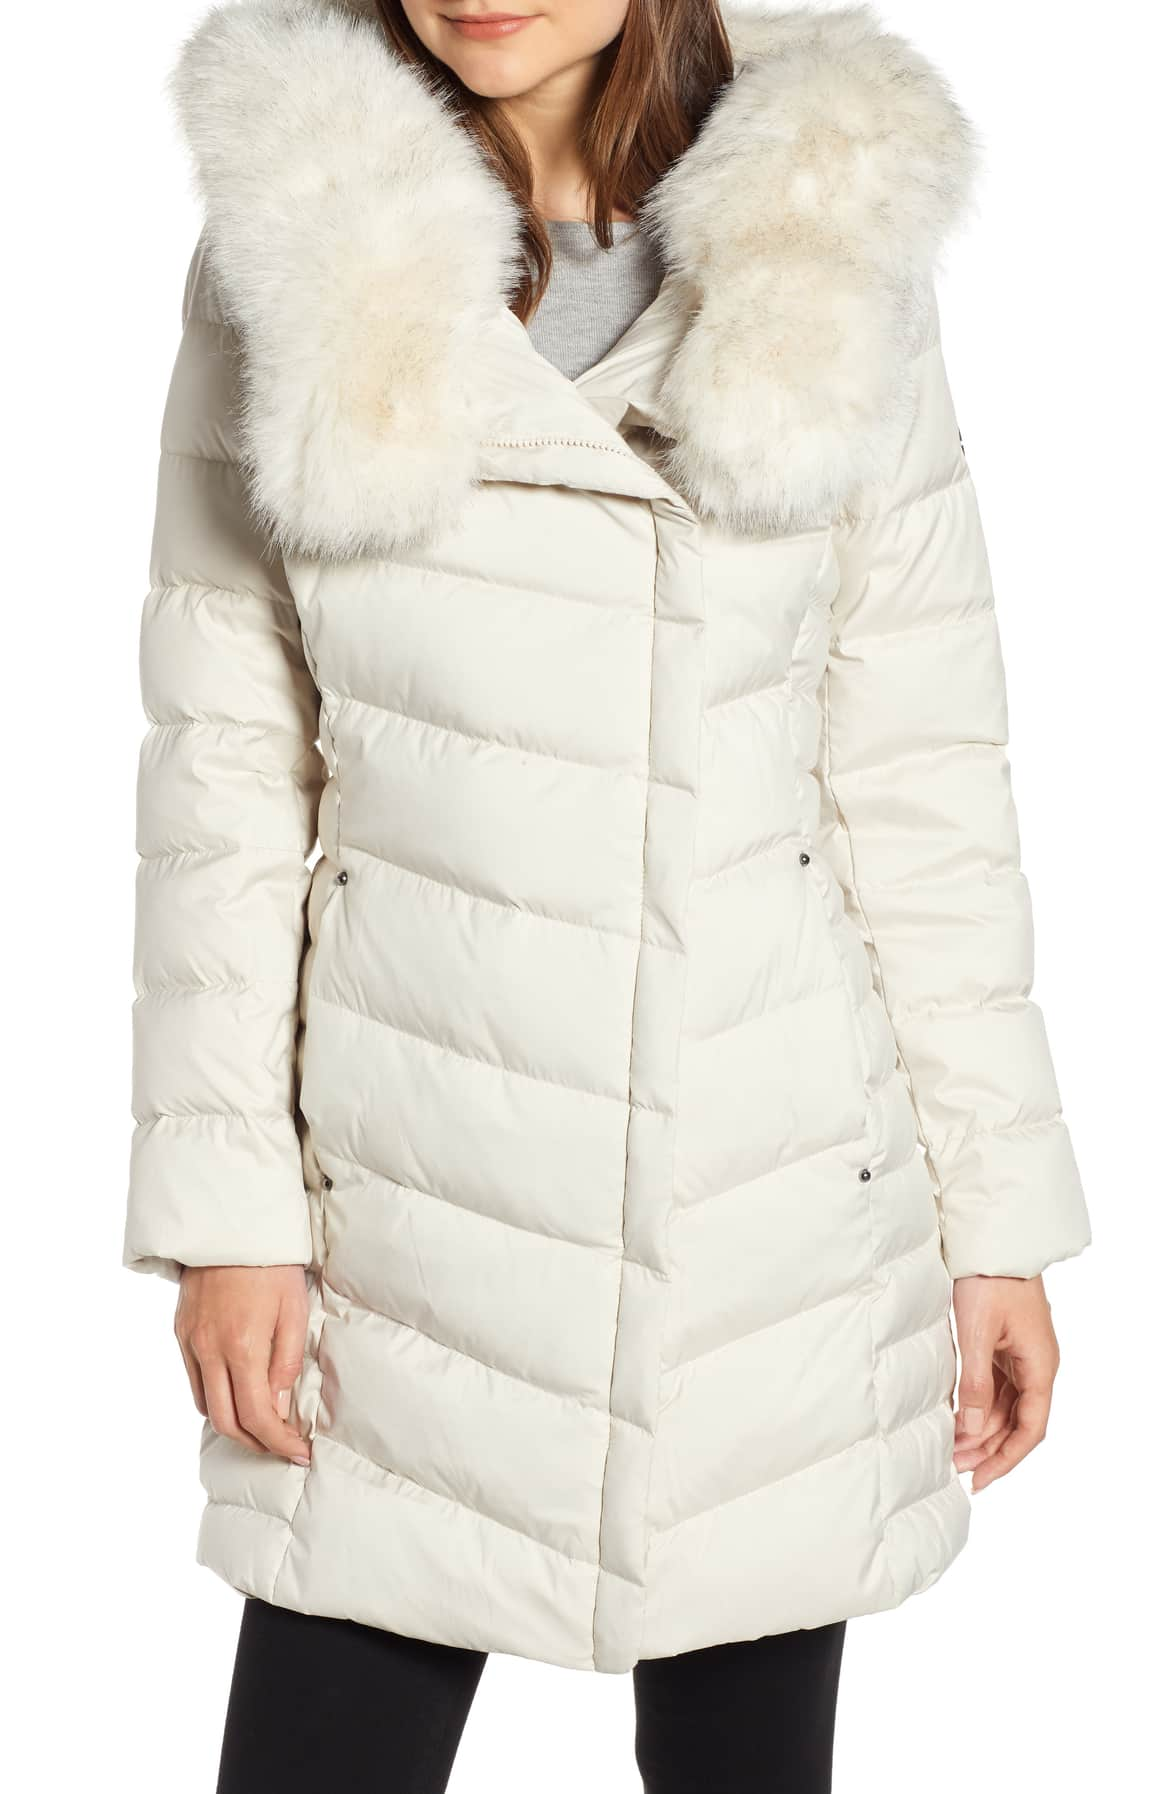 <p>A supersized ruff of soft faux fur trims the hood and neckline of a channel-quilted puffer jacket.{&nbsp;}$238.00 (Image: Nordstrom){&nbsp;}</p><p></p>